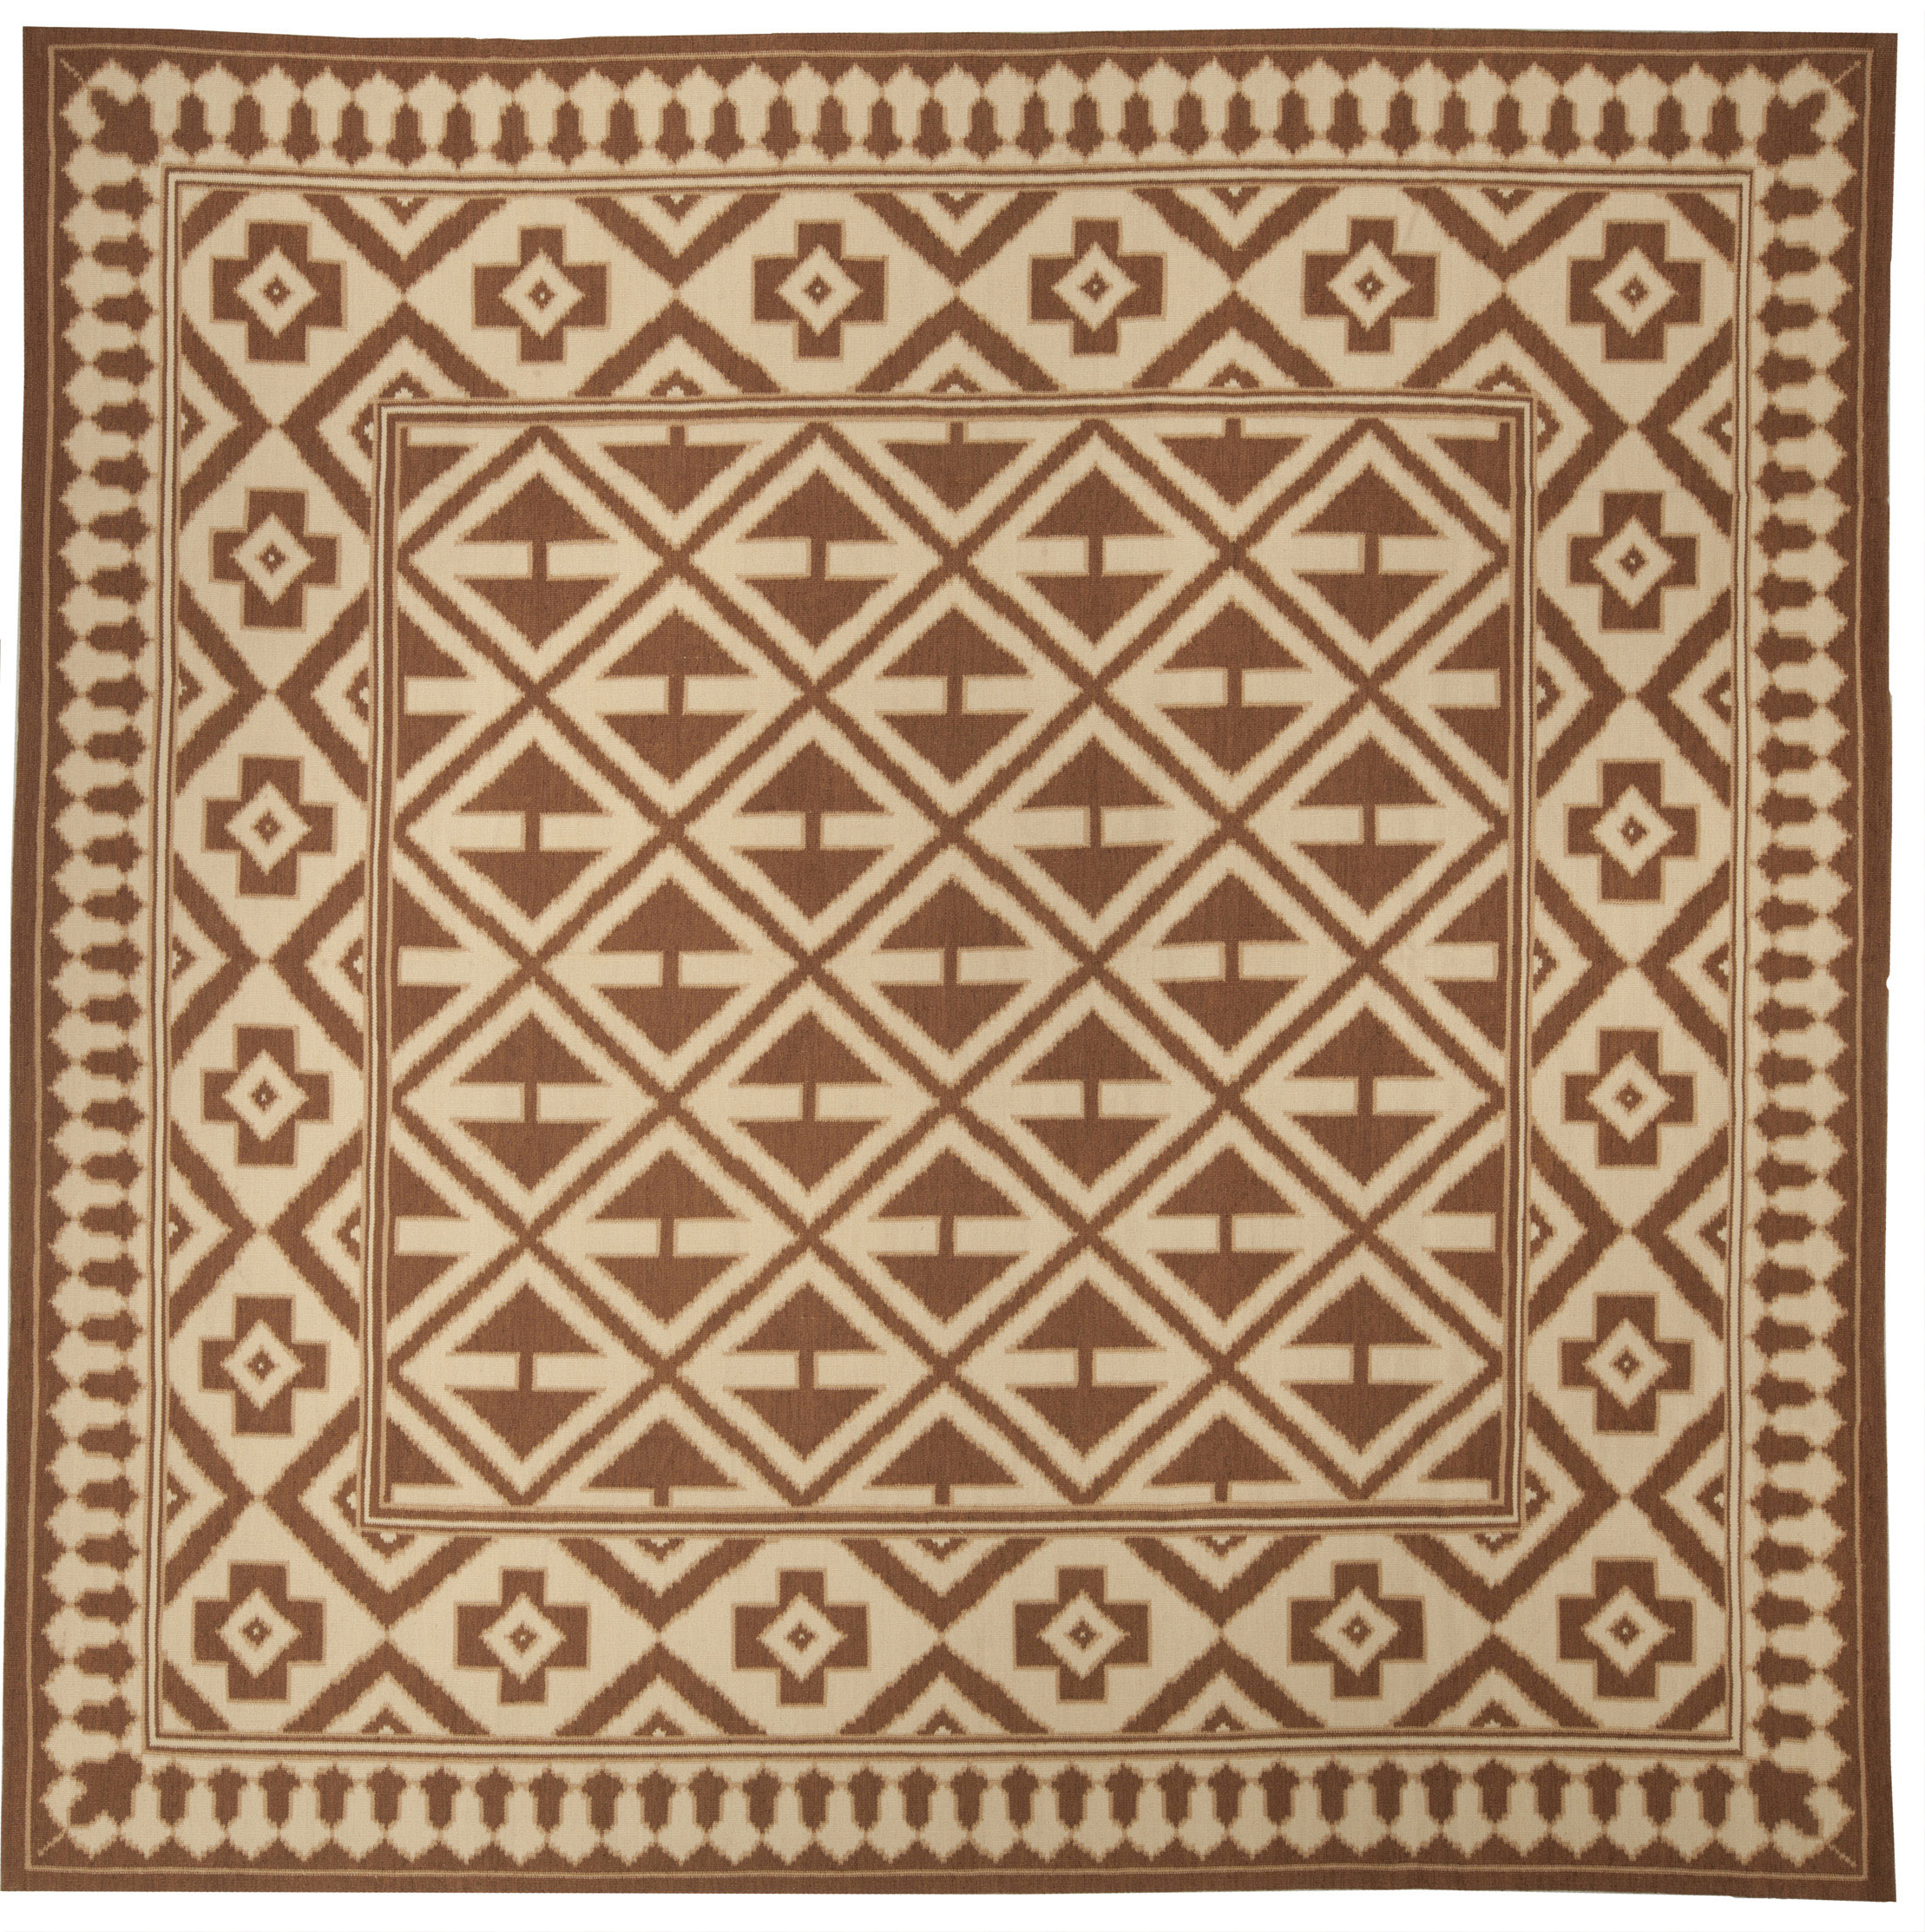 Melograno Aubusson Design Brown and Beige Hand Knotted Wool Rug N10365